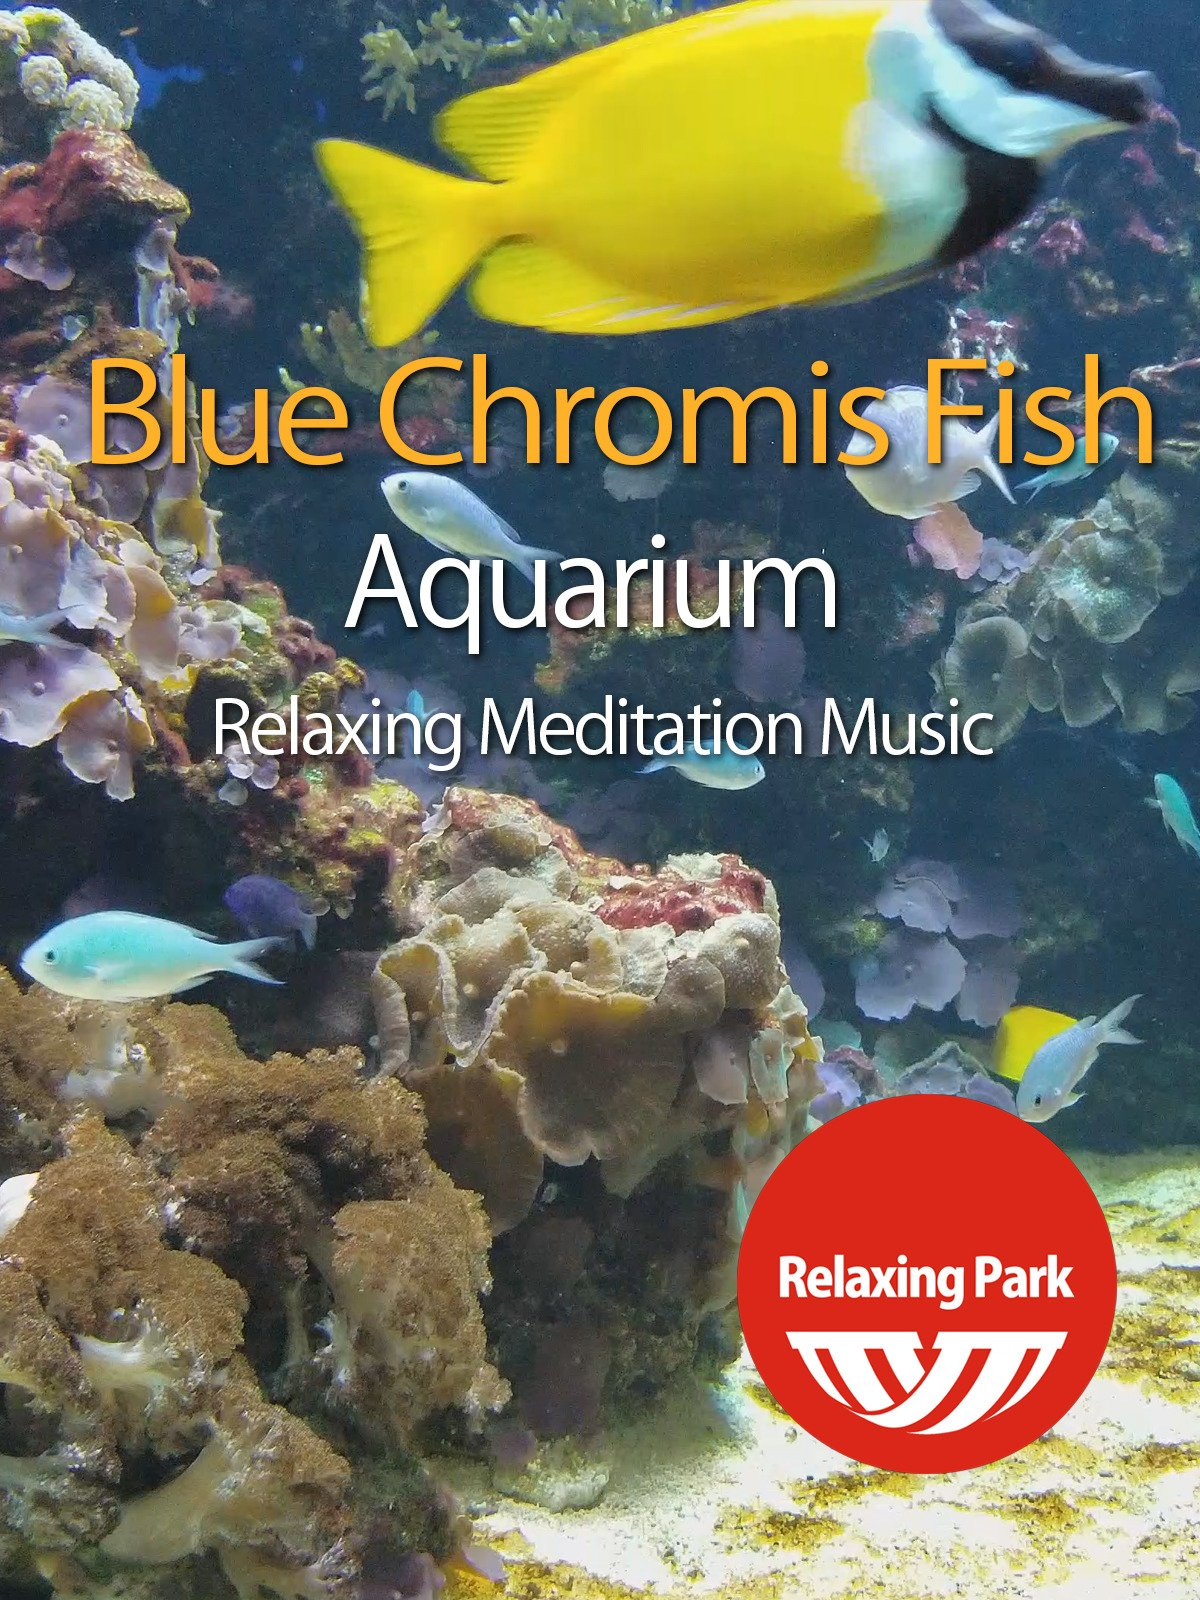 Blue Chromis Fish Aquarium with Relaxing Meditation Music on Amazon Prime Instant Video UK